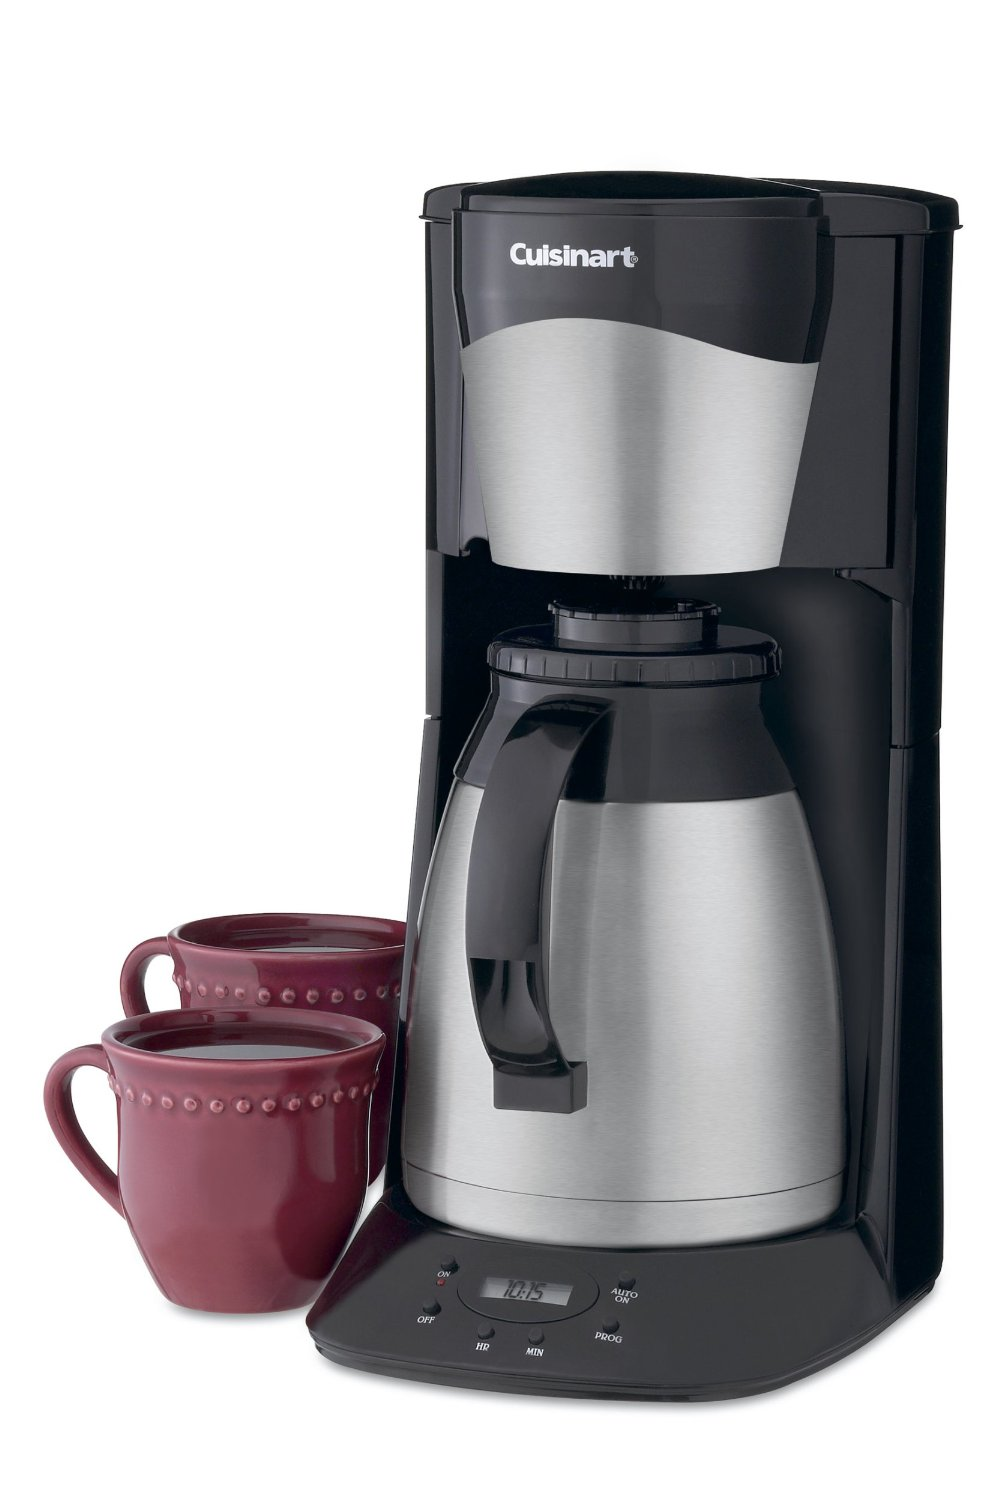 C Programmable Thermal Coffee Maker By Cuisinart